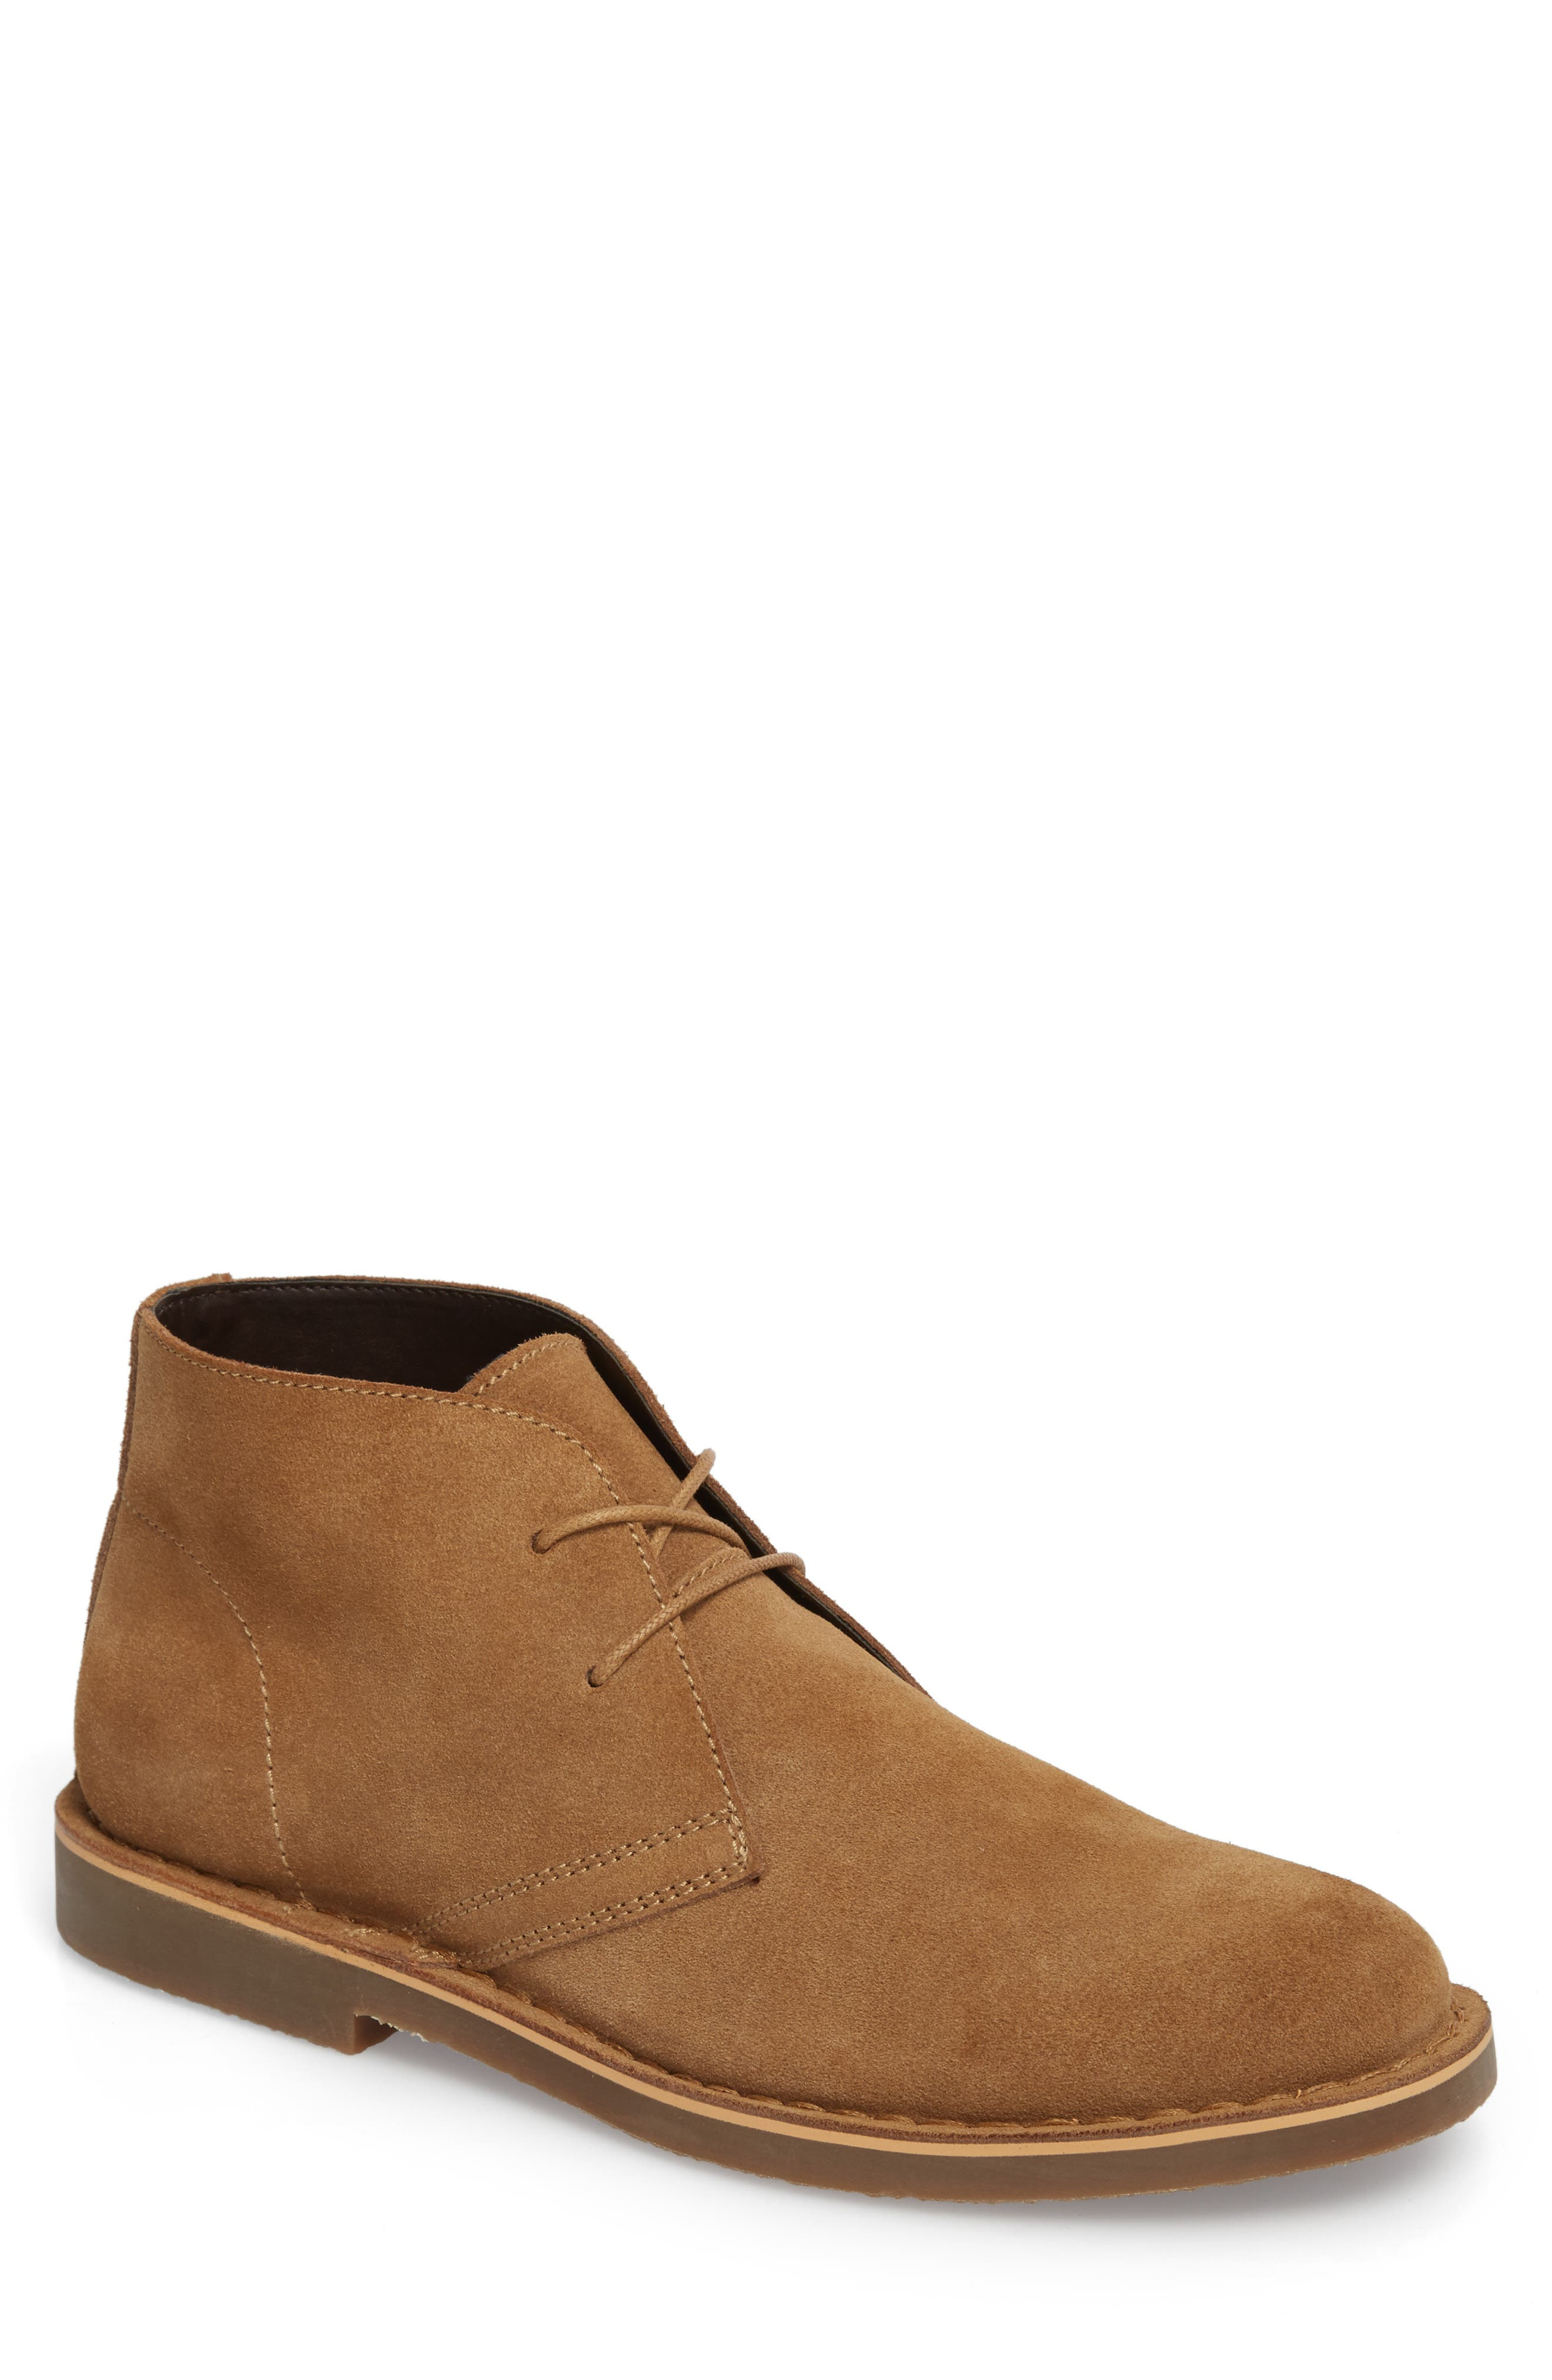 Tempe Chukka Boot,                         Main,                         color, SAND SUEDE